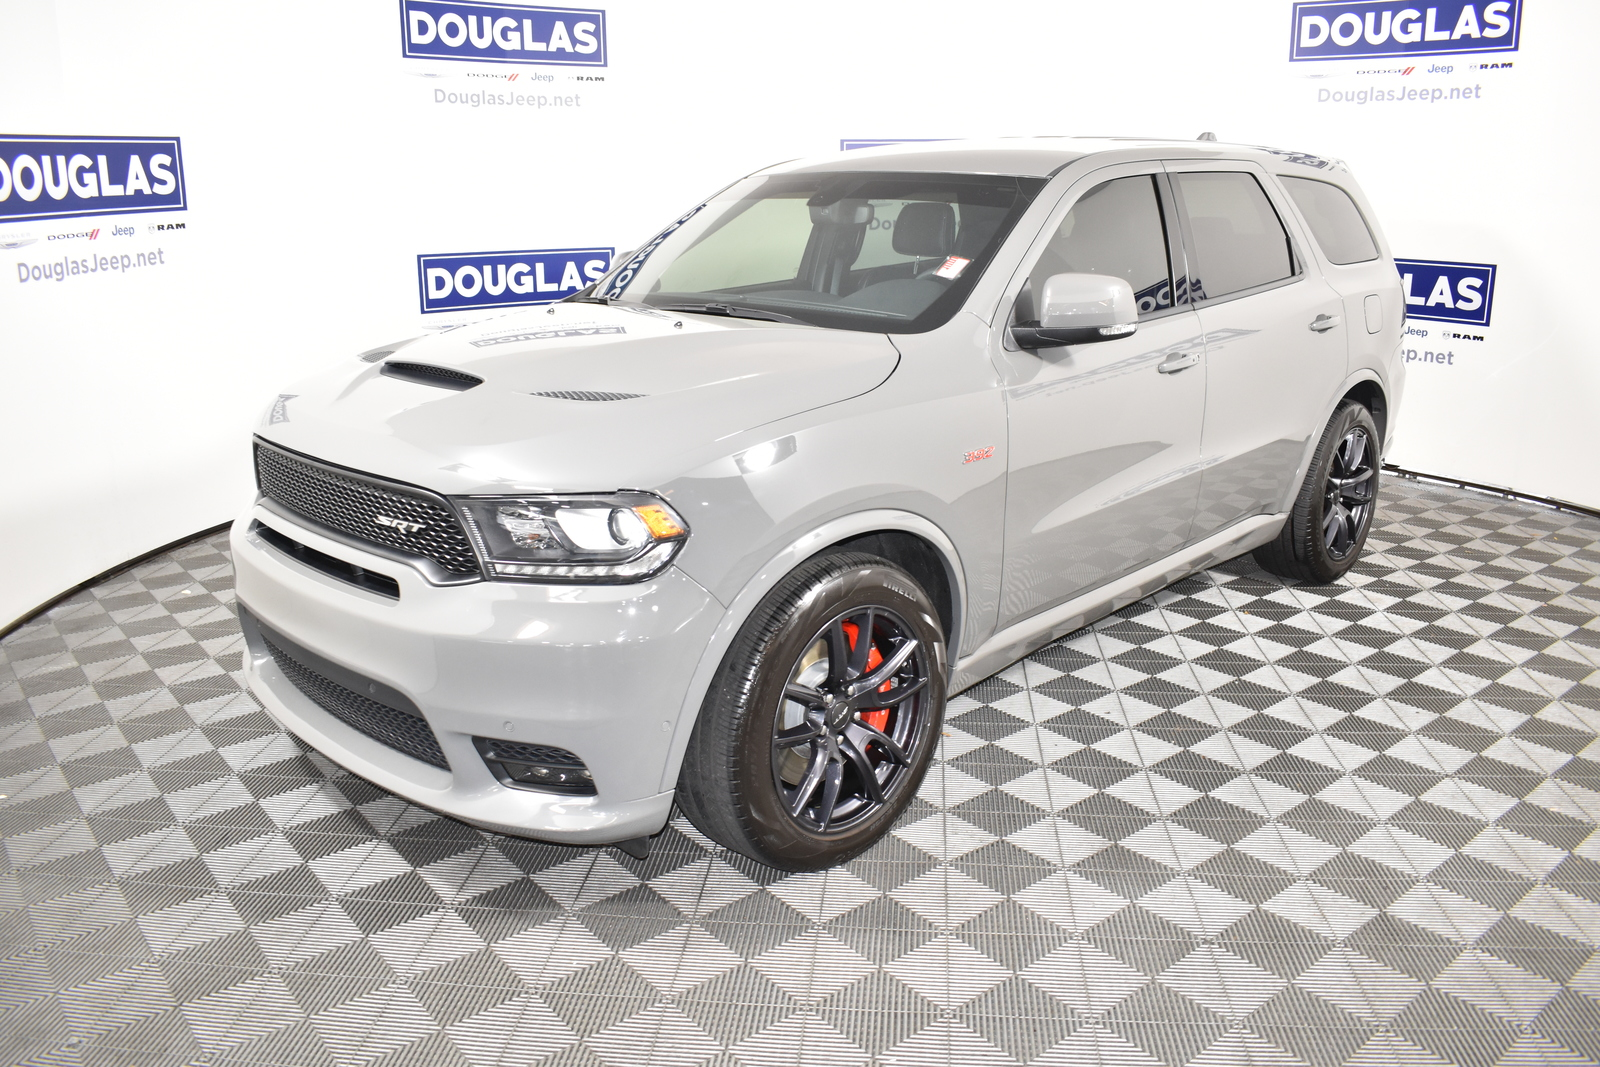 Pre-Owned 2020 Dodge Durango SRT AWD